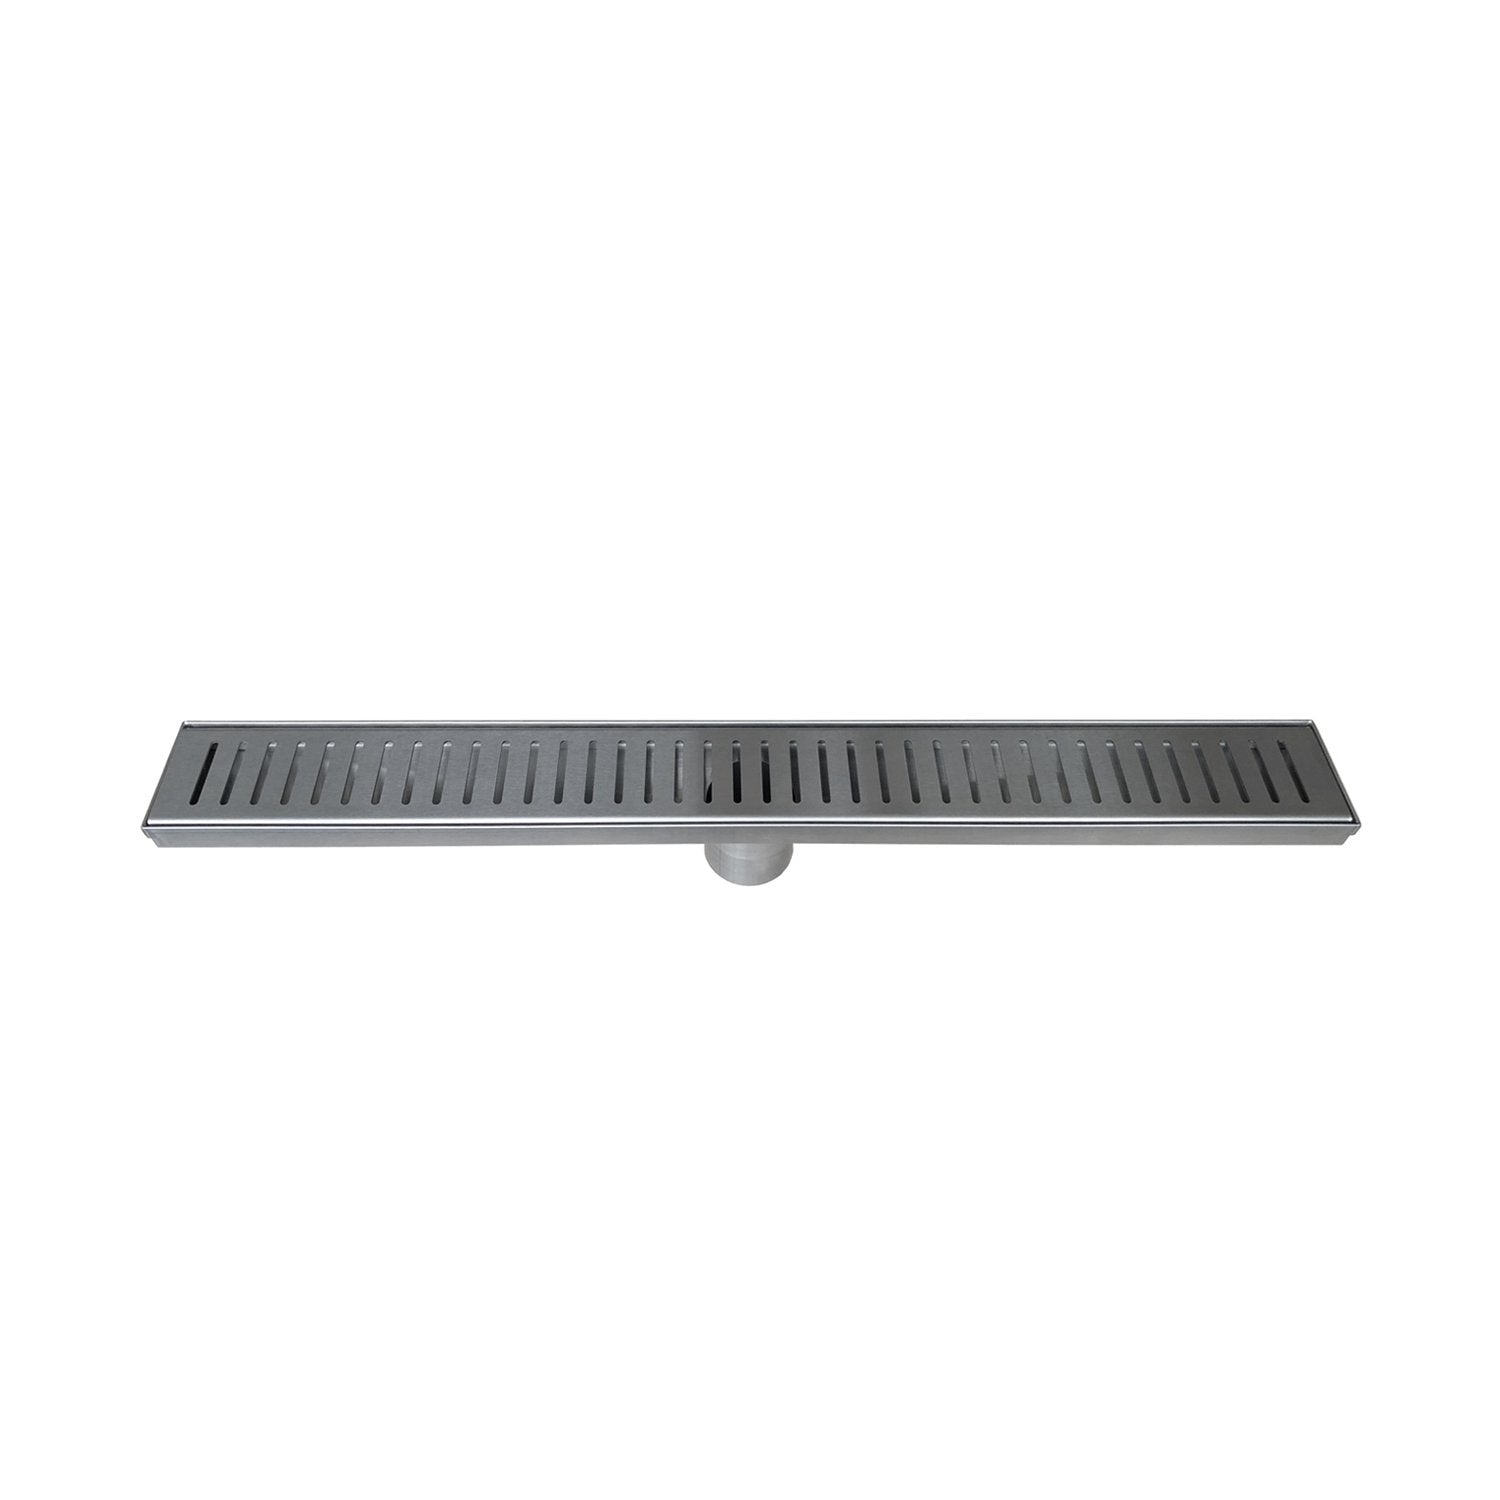 DAX Rectangle Shower Floor Drain, Stainless Steel Body, Stainless Steel Finish, 36 x 3-3/8 Inches (DR36-G06)